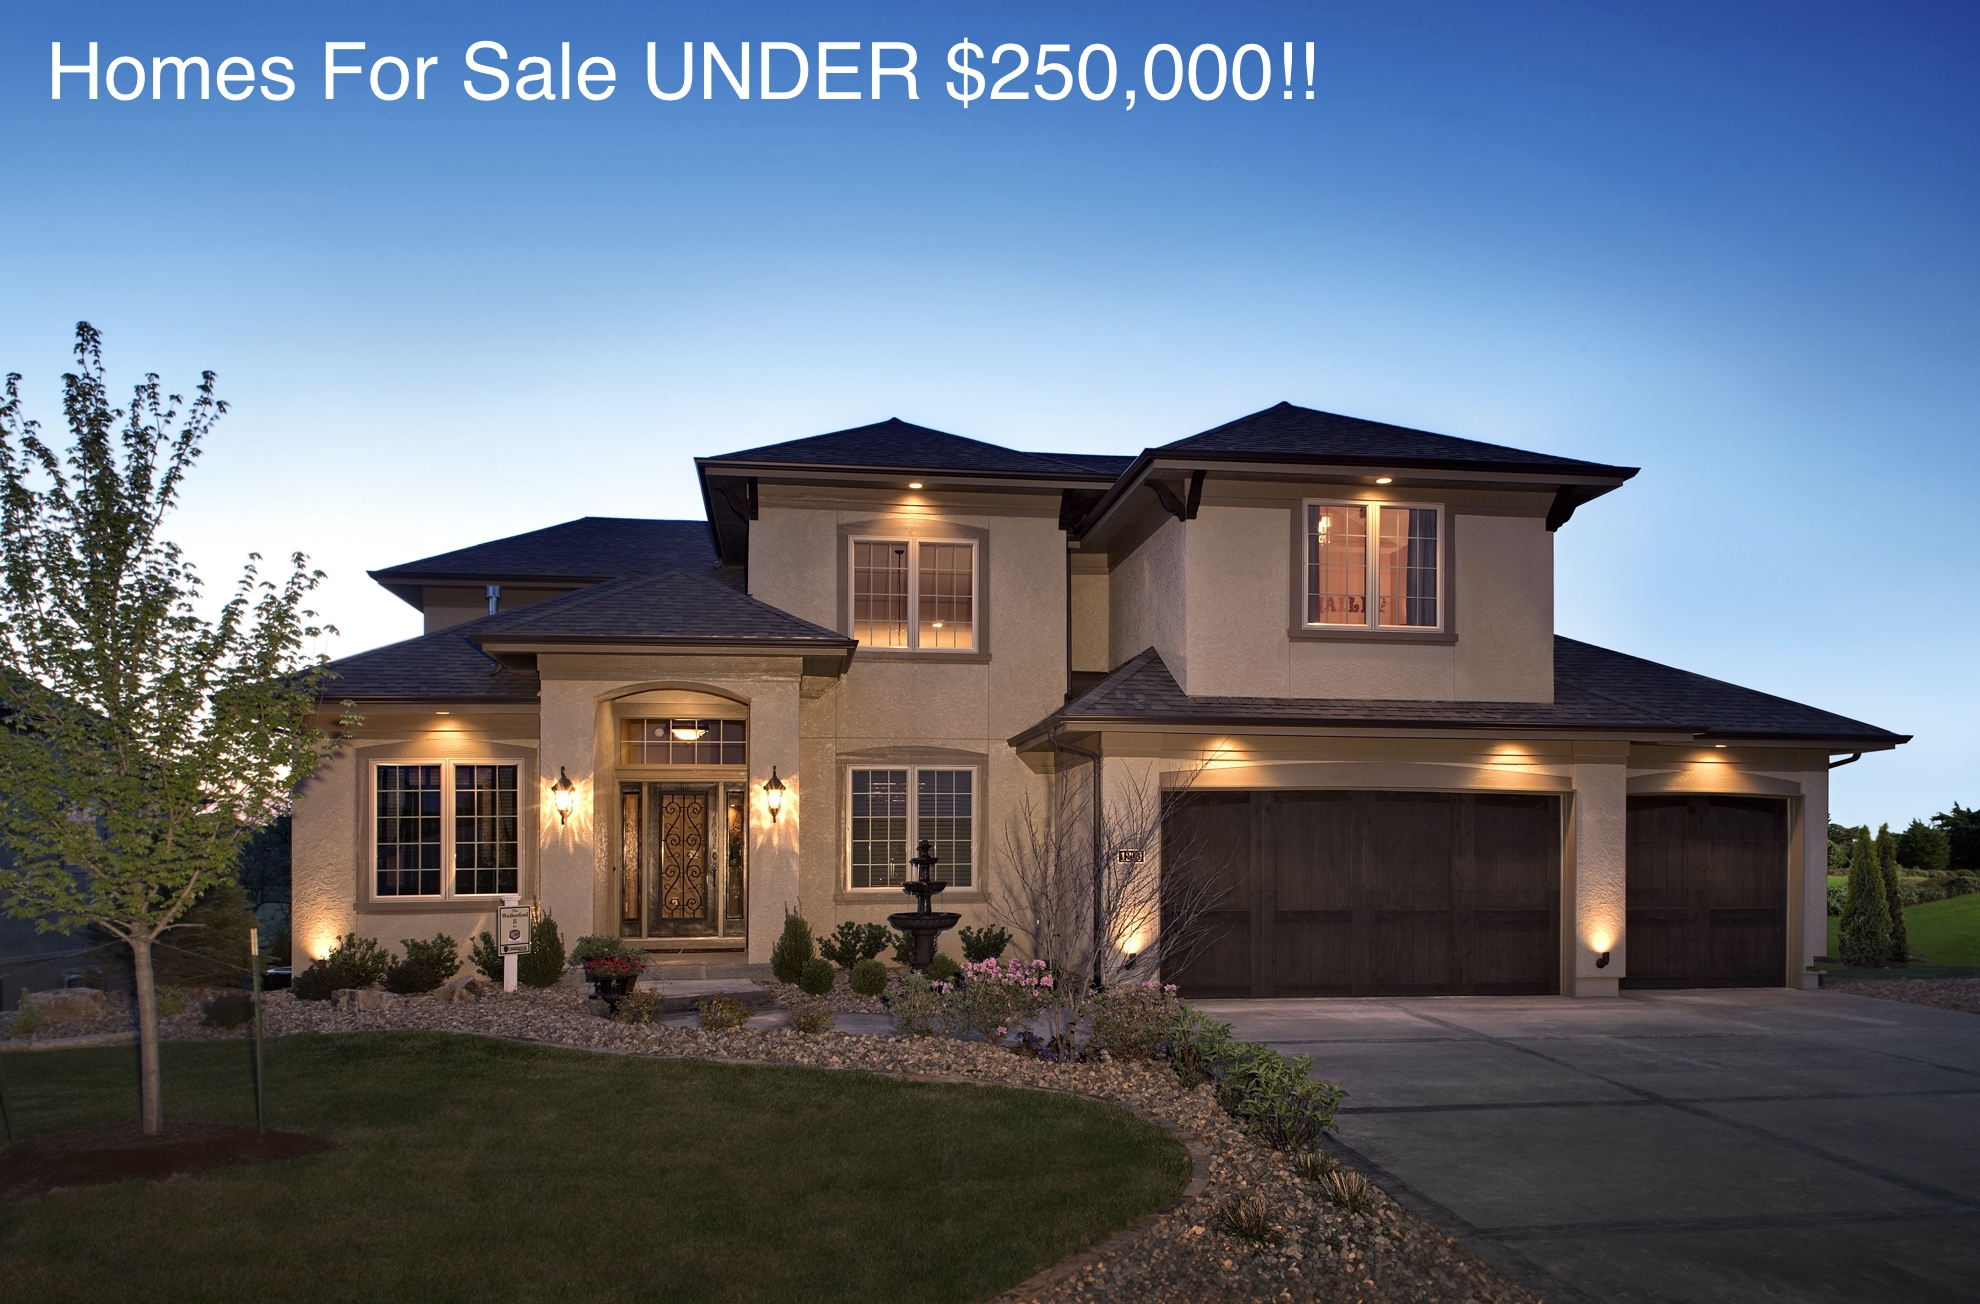 Homes For Sale UNDER $250,000!!!